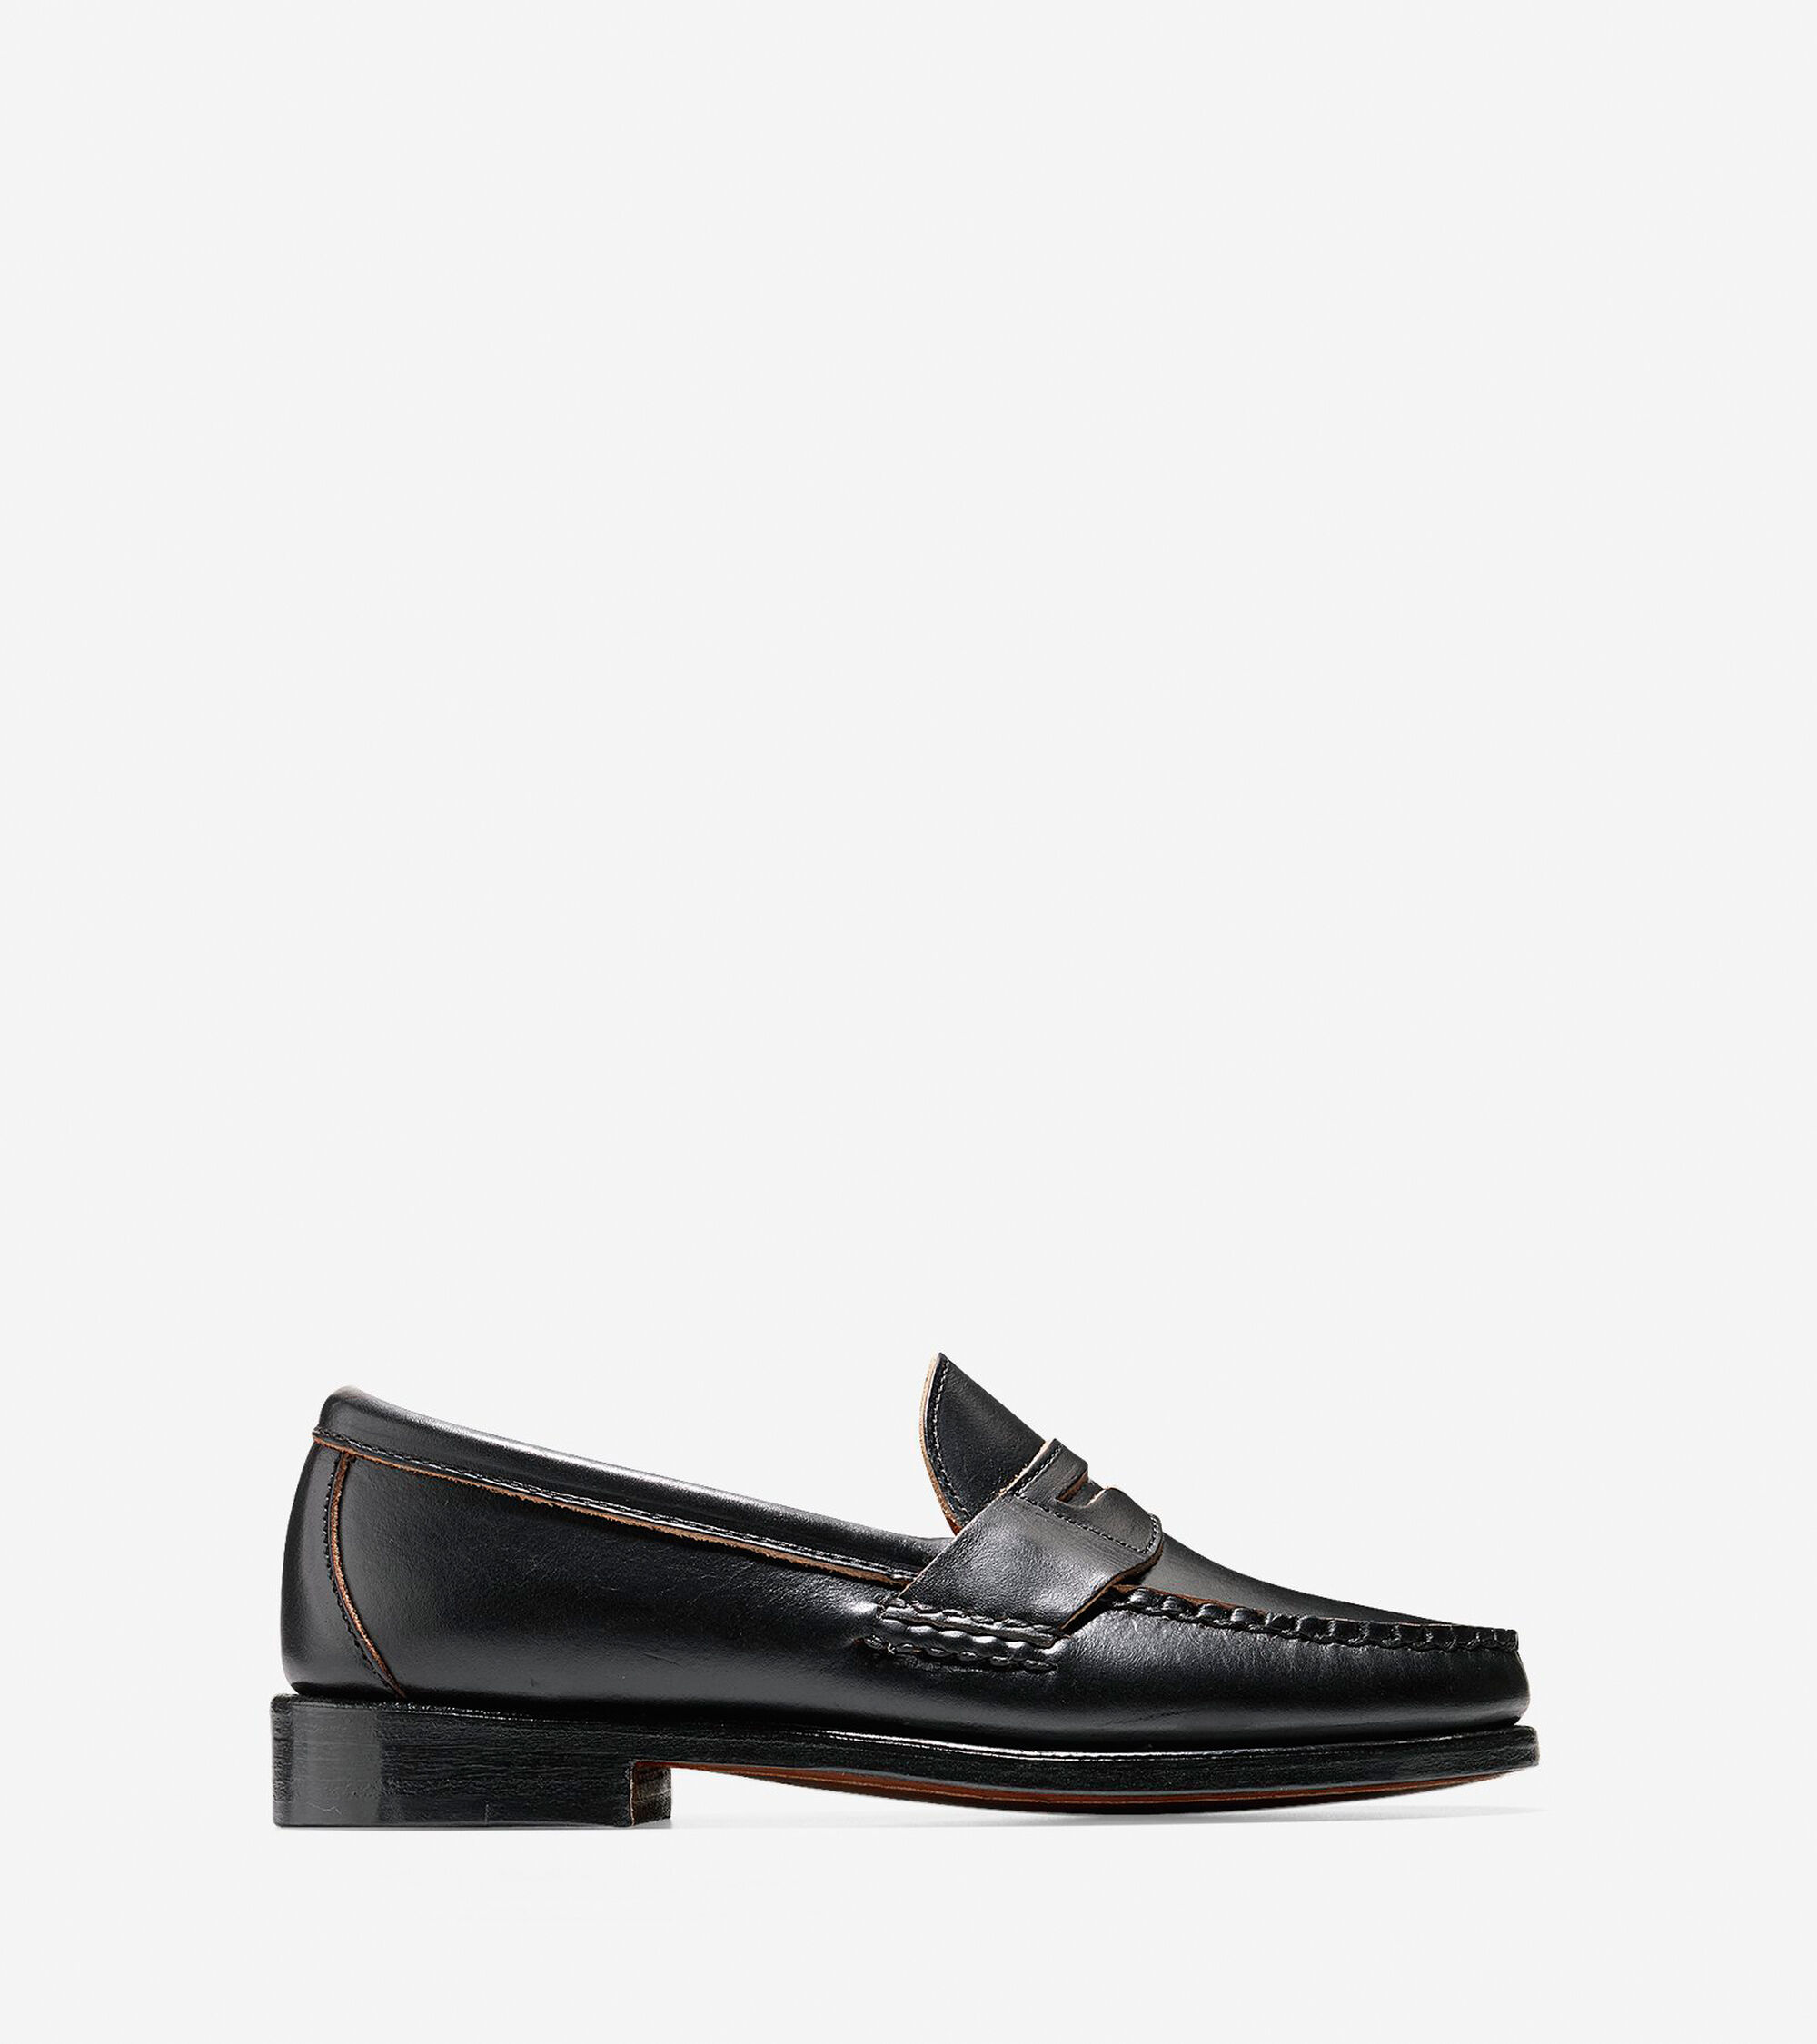 2b4d528503c560 Women s Pinch USA Loafers in Black